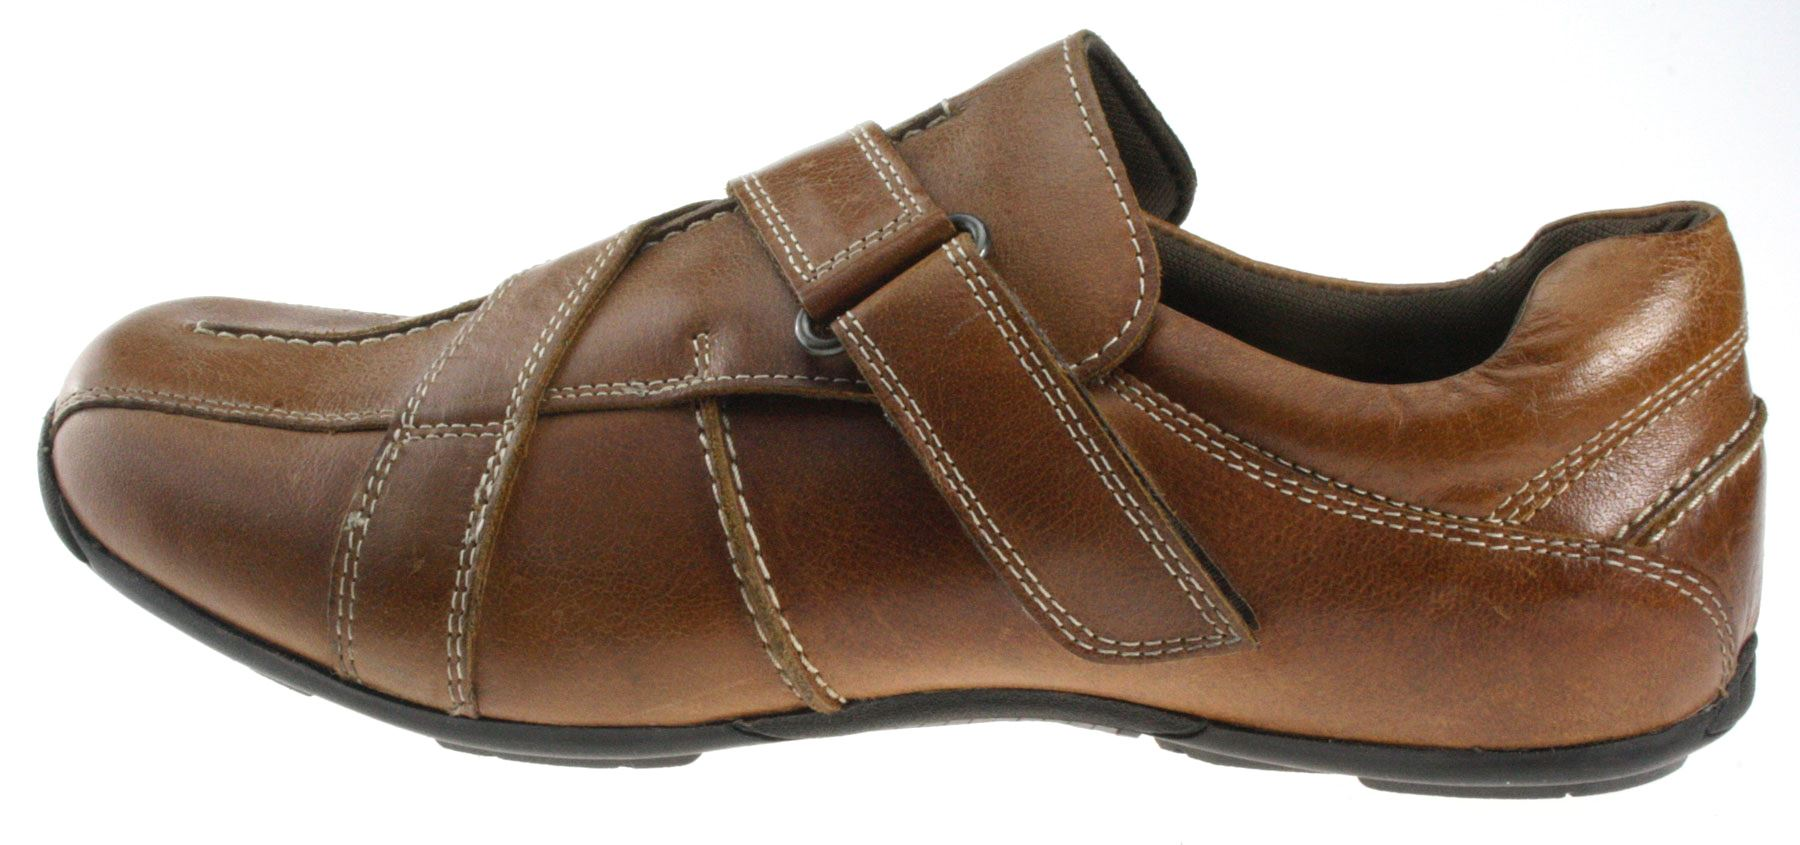 comfortable mens op tif wide jcpenney s comforter men shoes n wid comfort hei g usm available width